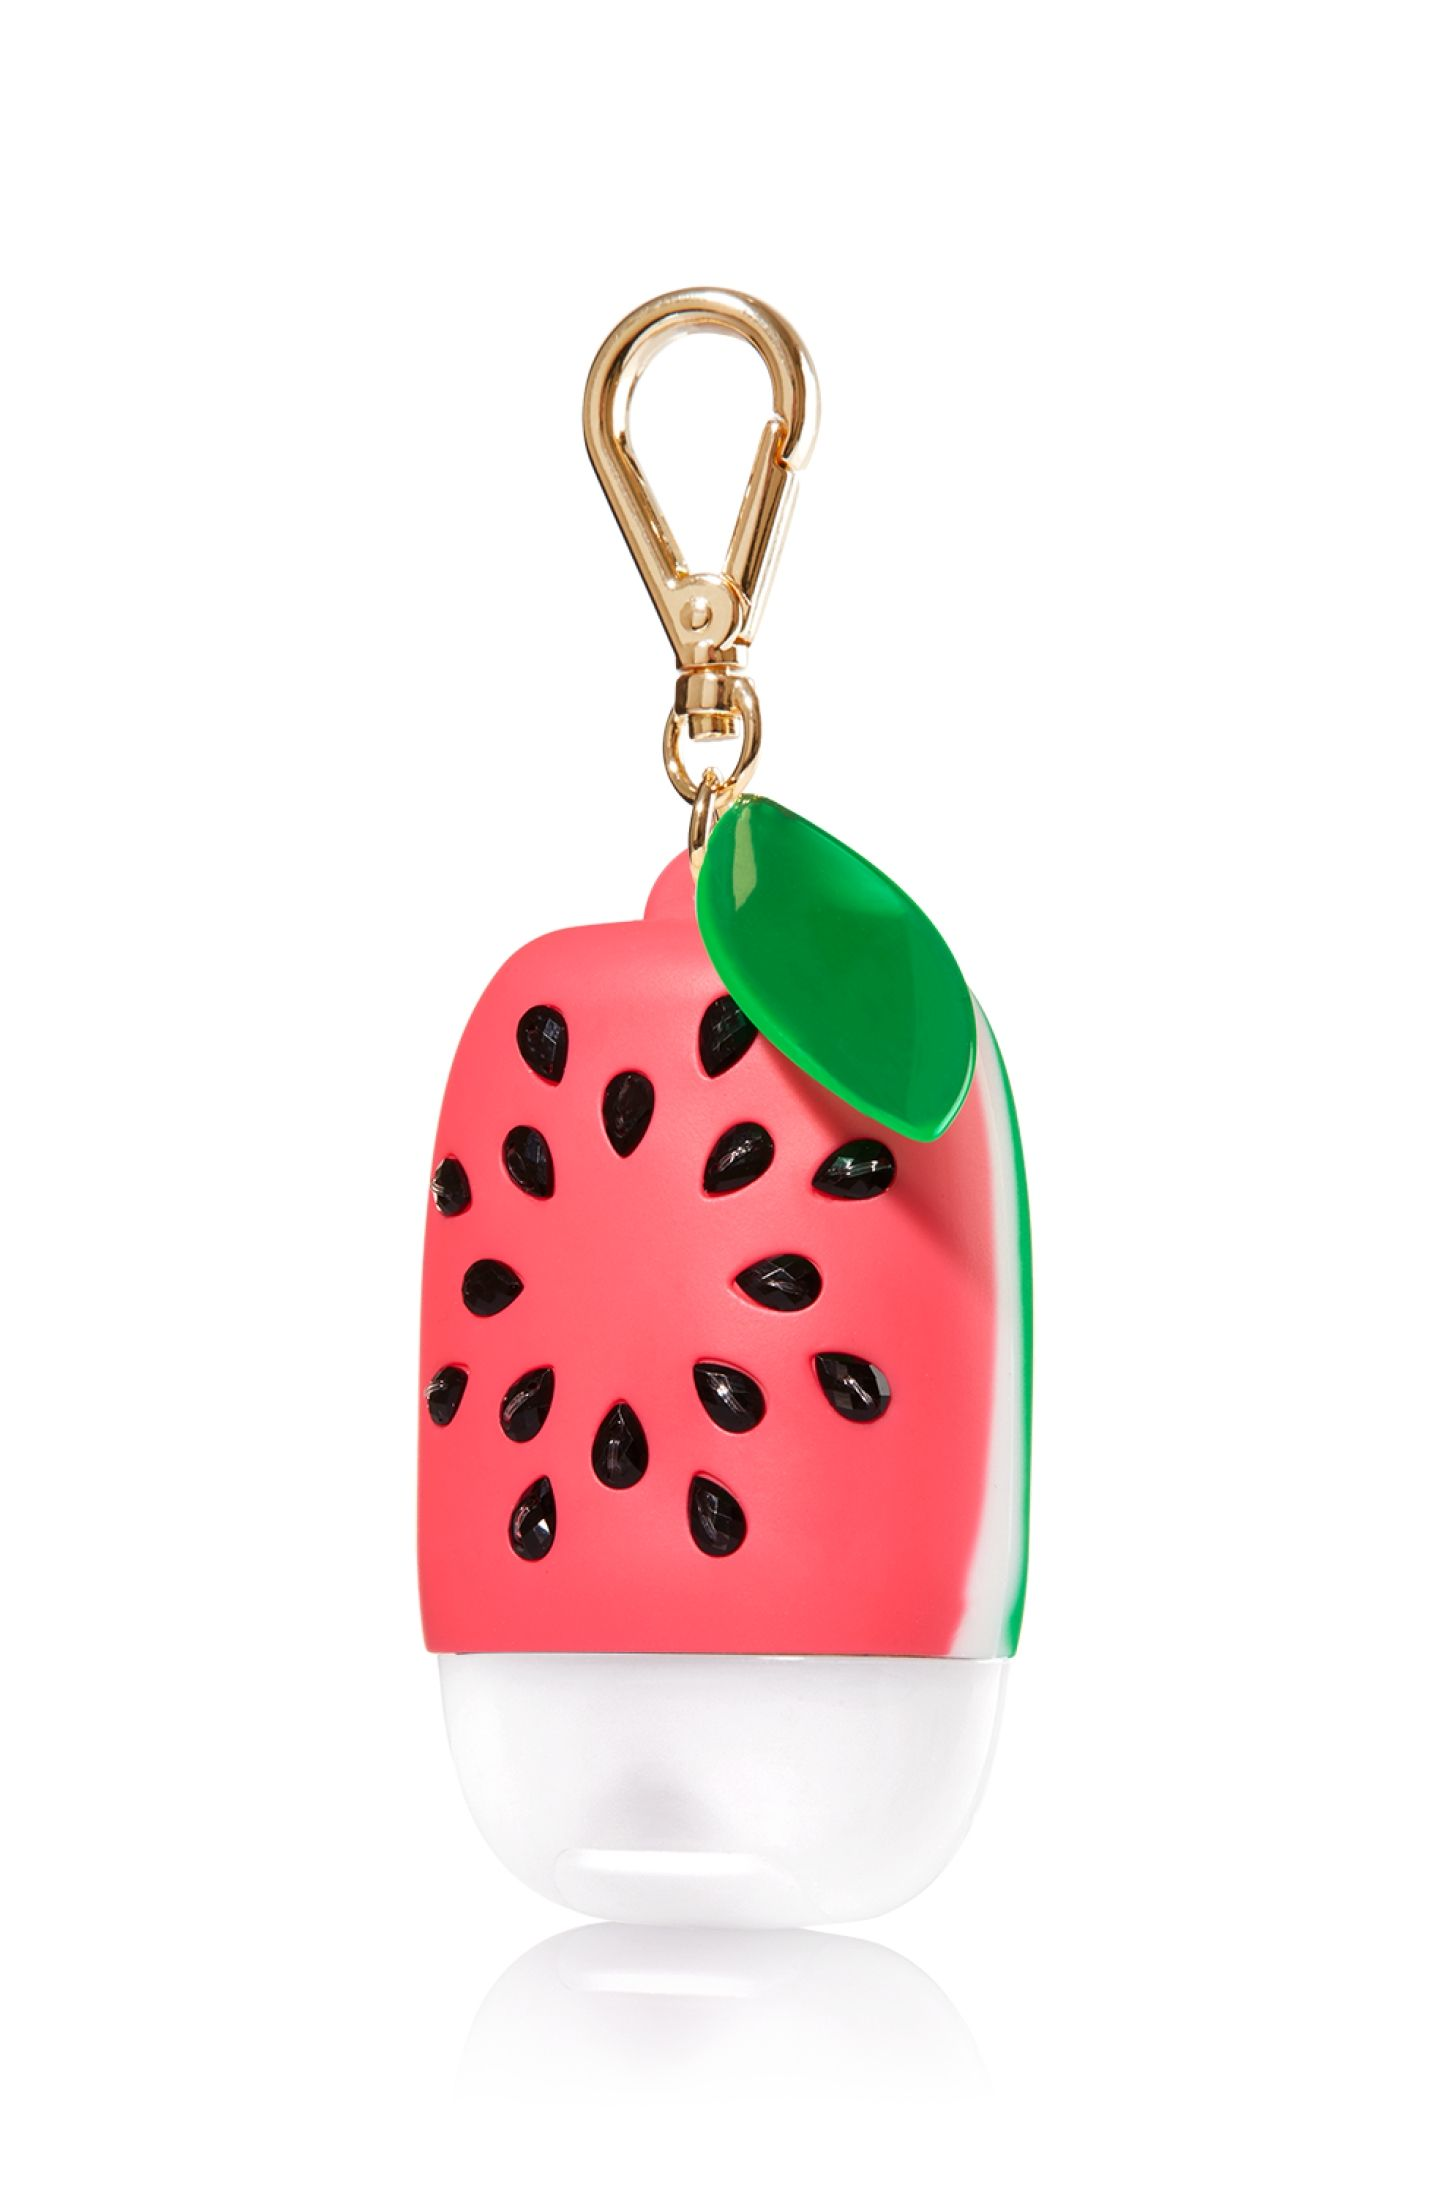 Watermelon Slice Pocketbac Holder Bath Body Works Bath